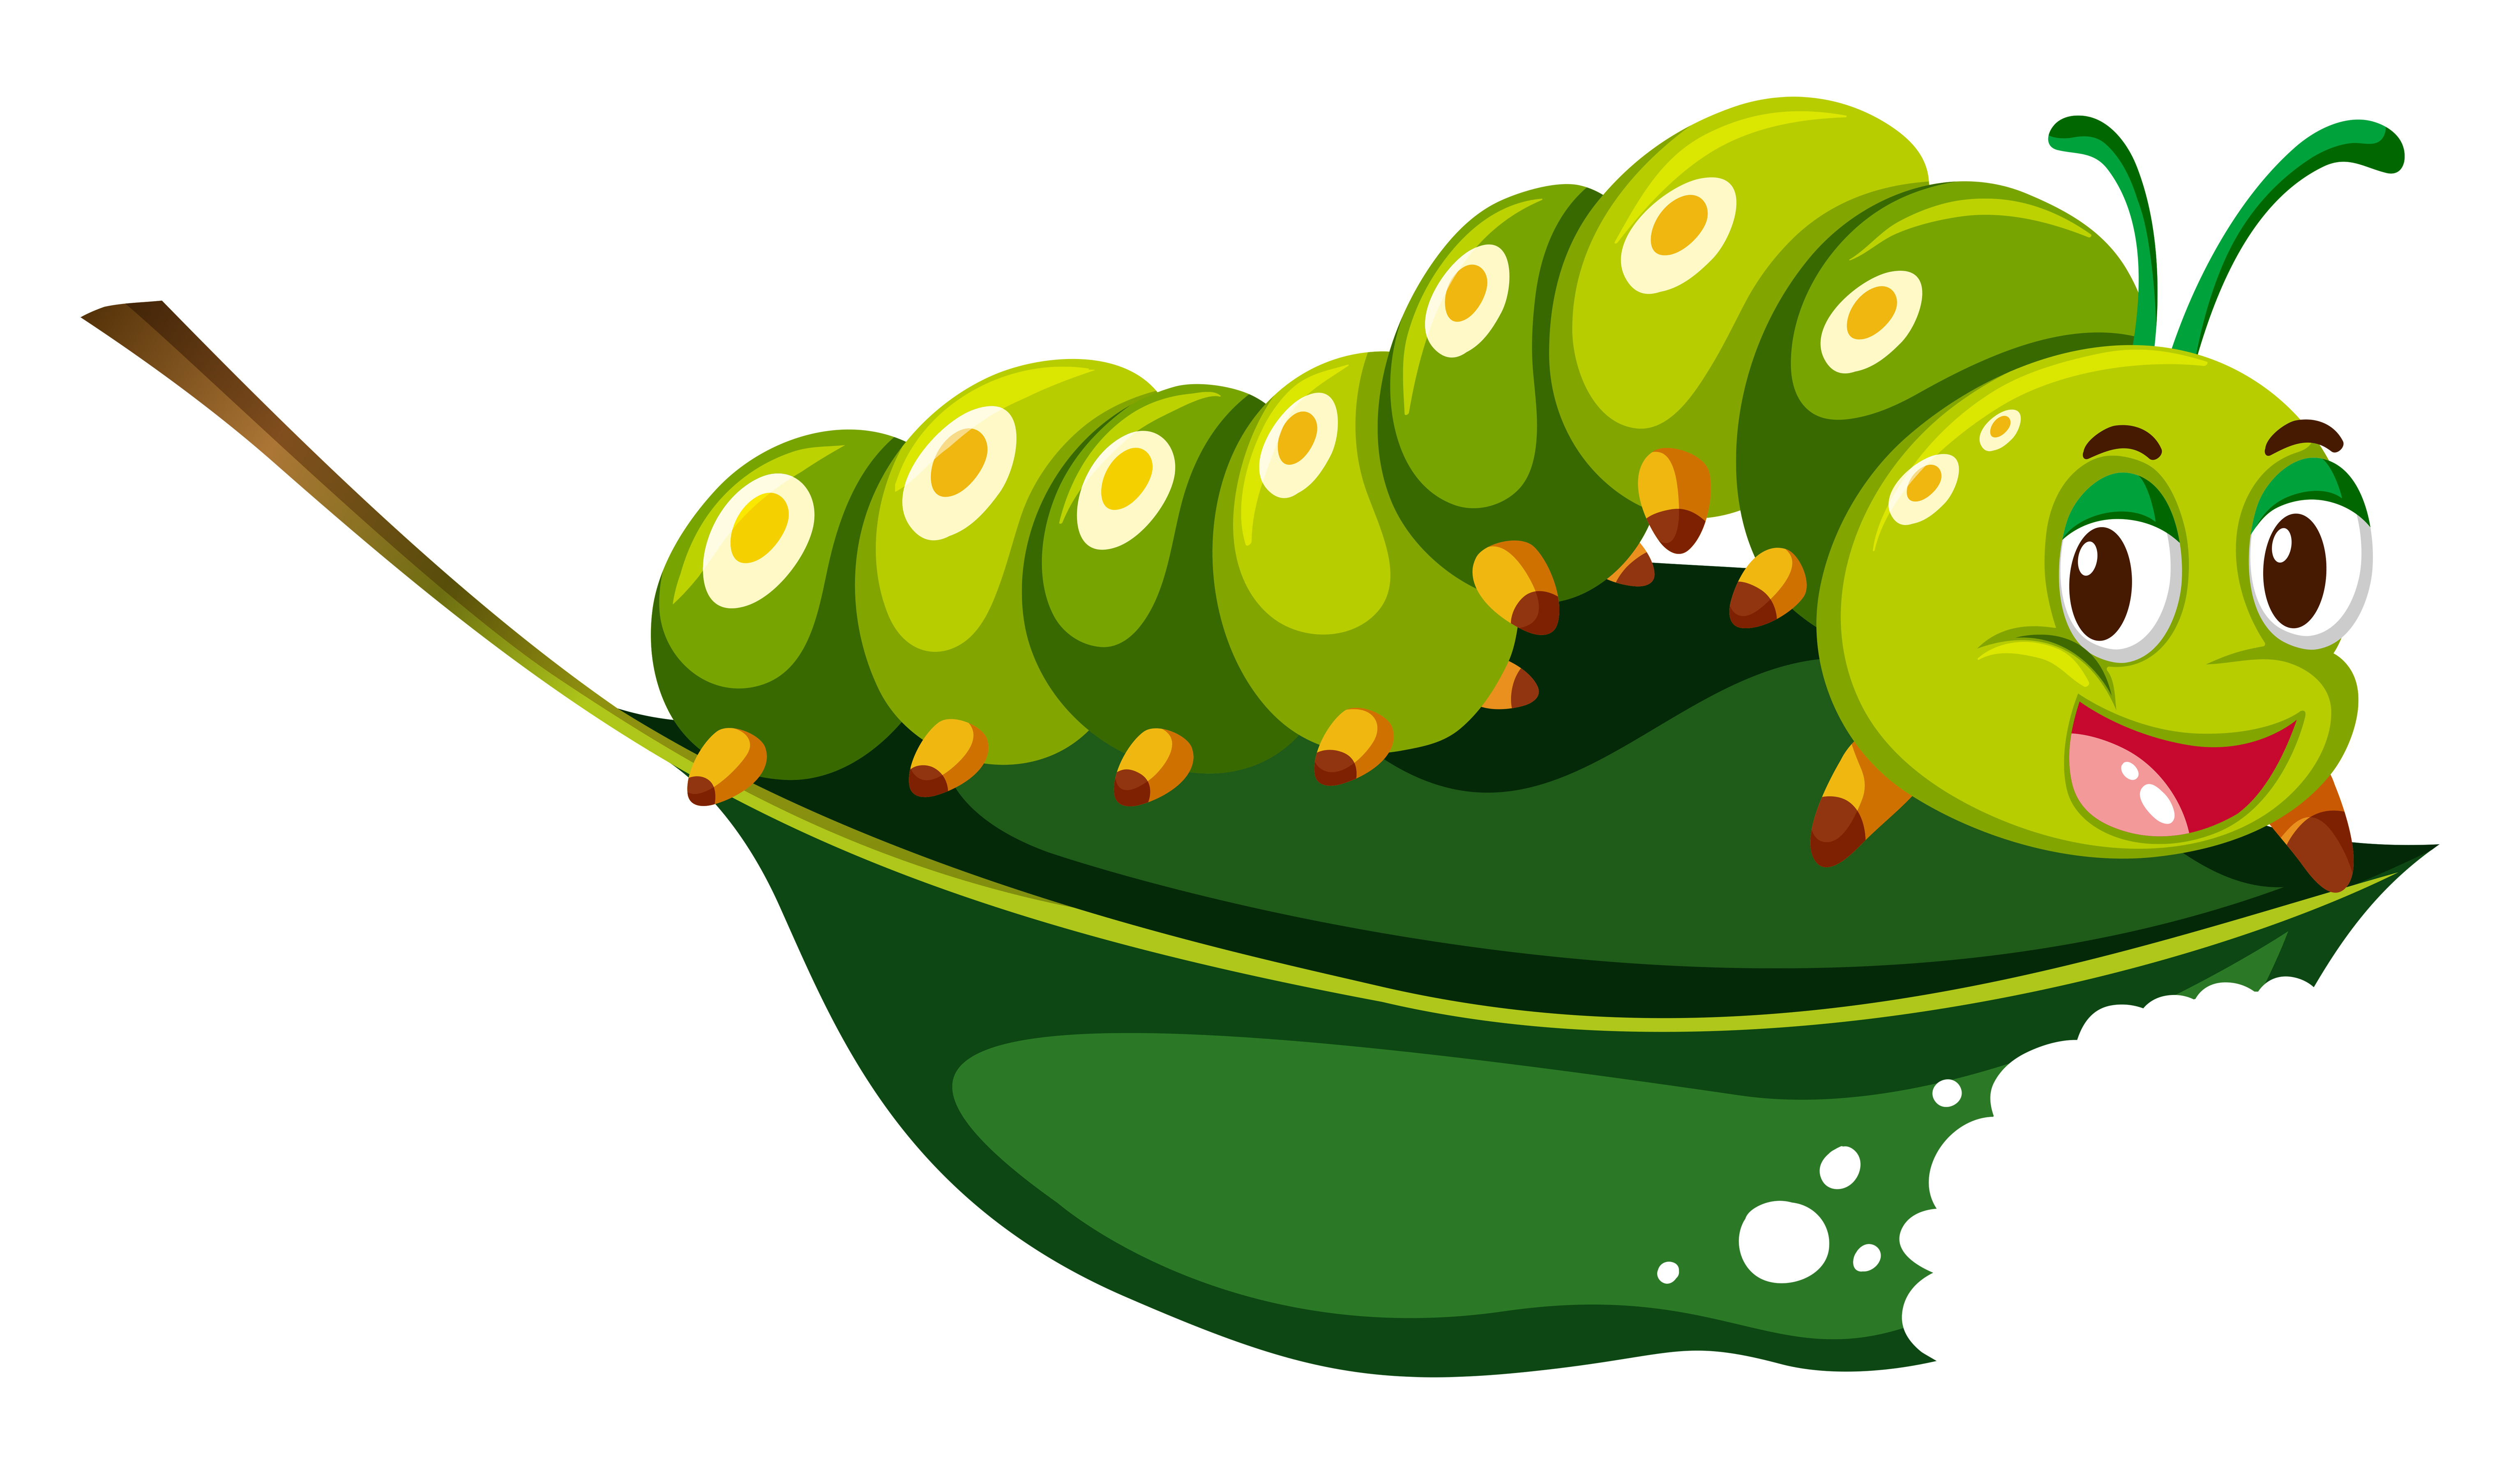 Cute Caterpillar Chewing Green Leaf Download Free Vectors